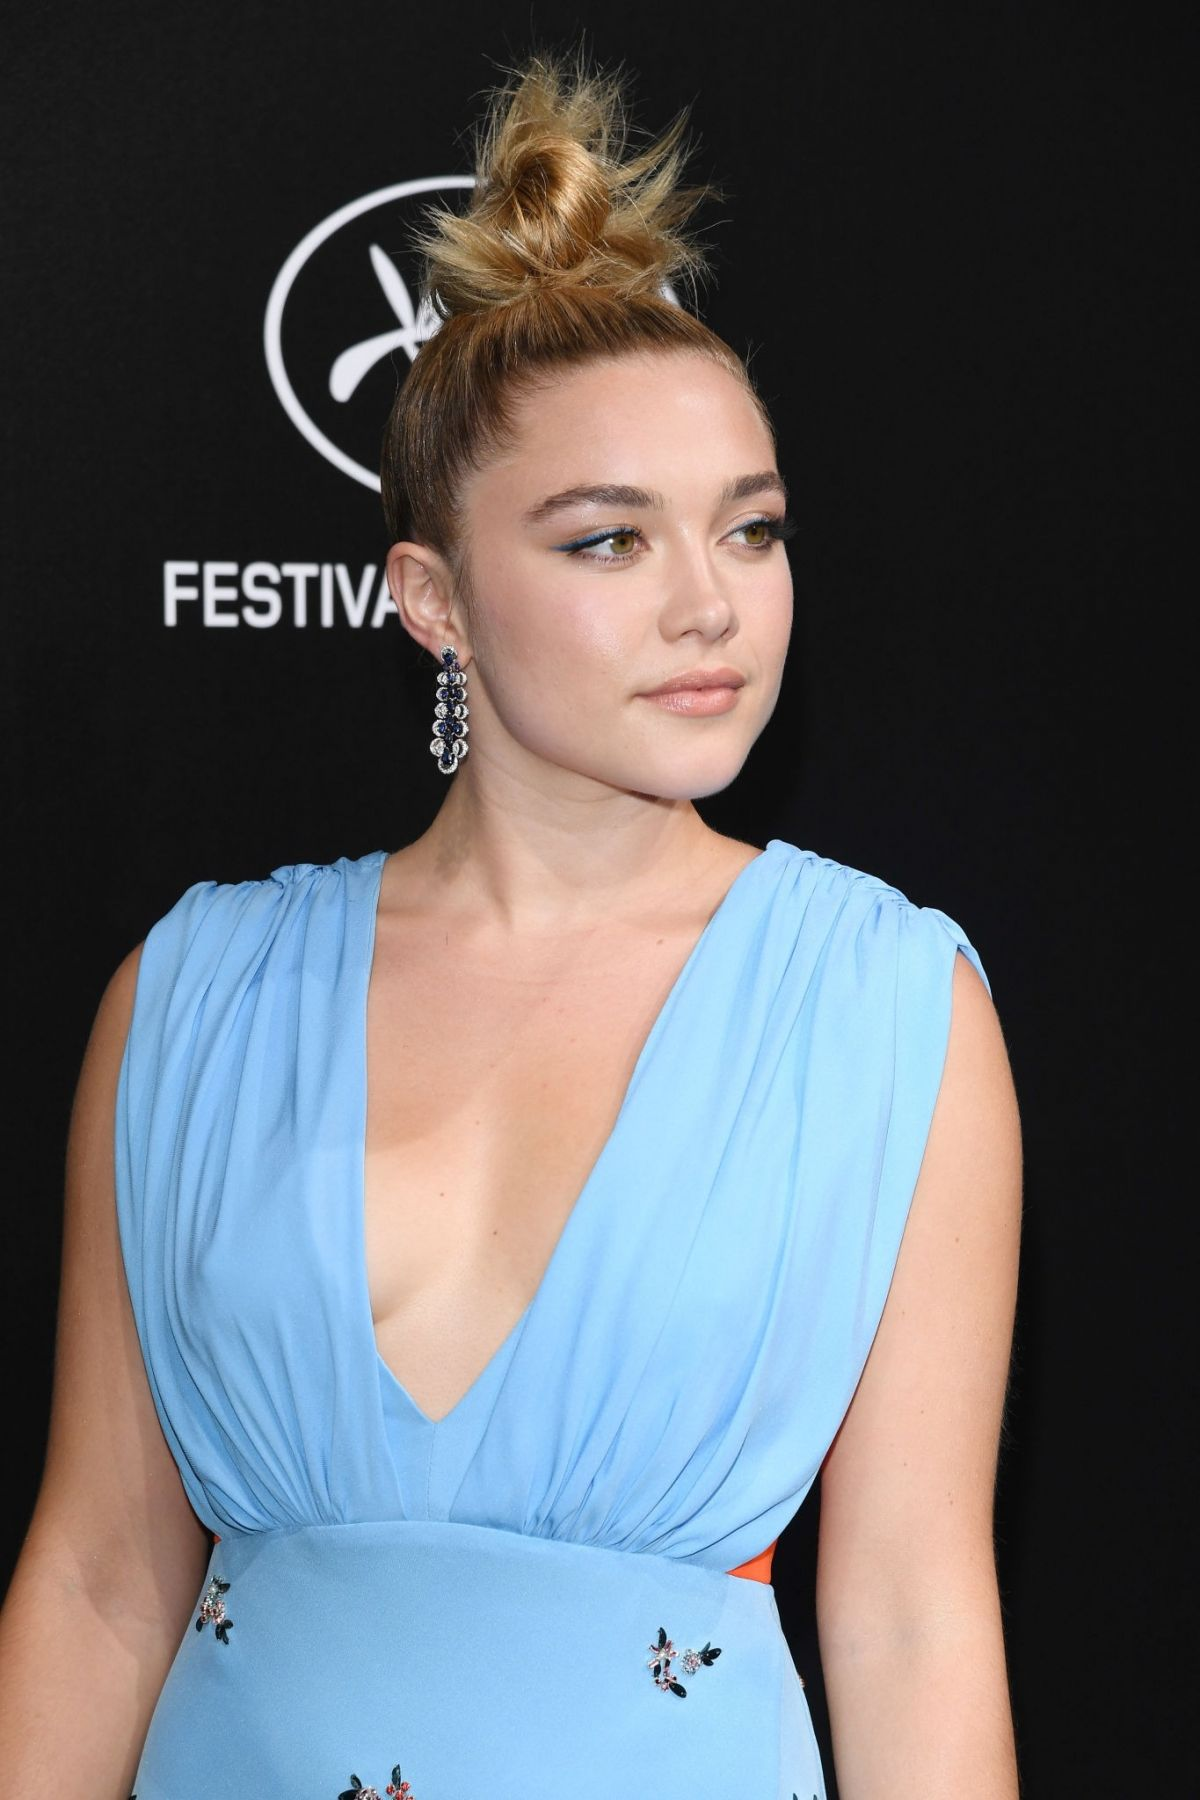 Florence Pugh 2019 >> Florence Pugh At Official Trophee Chopard Dinner At Cannes